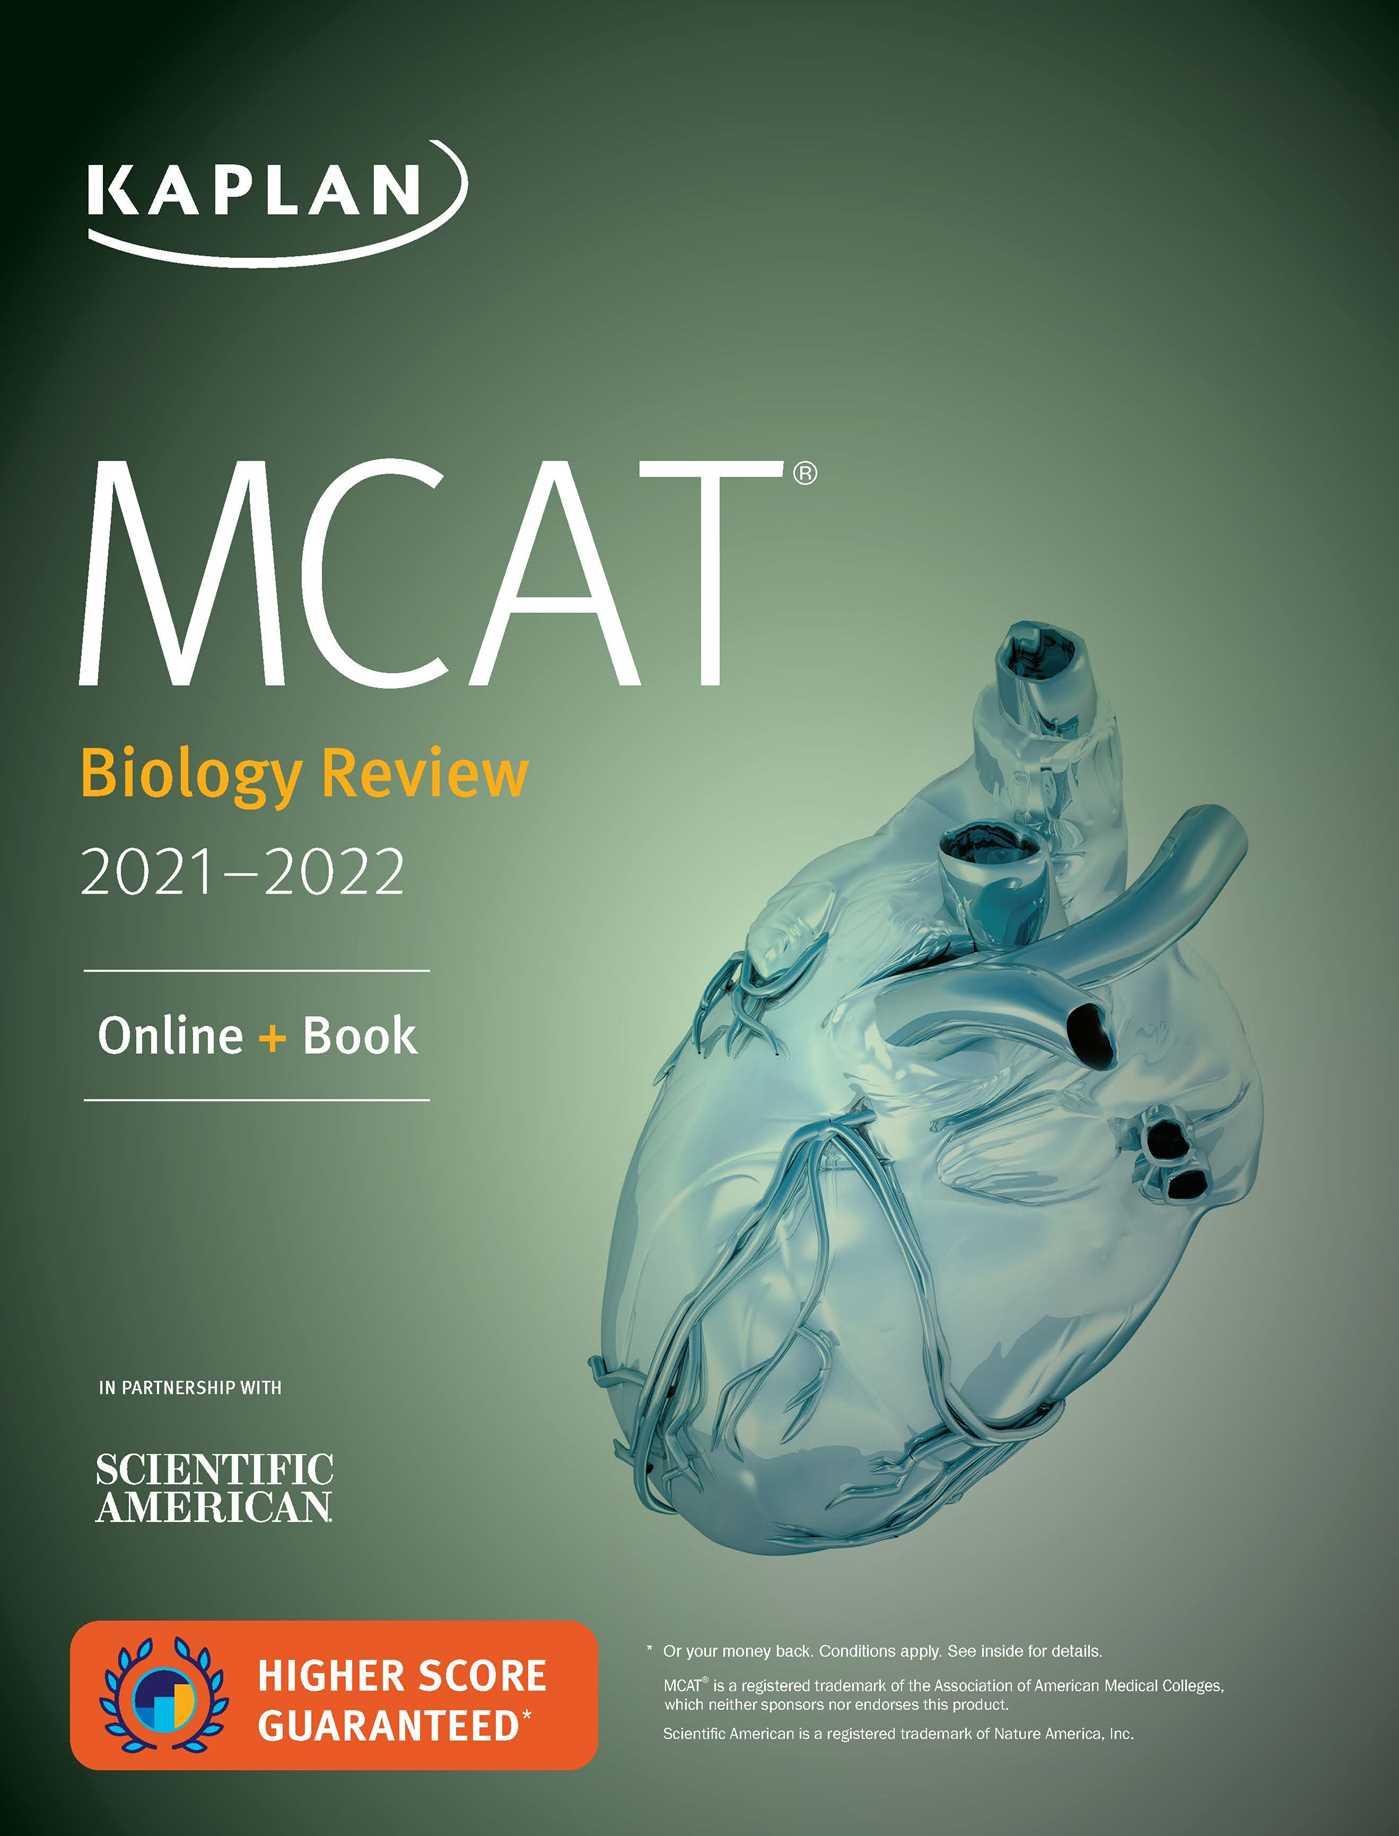 MCAT Biology Review 2021-2022: Online + Book